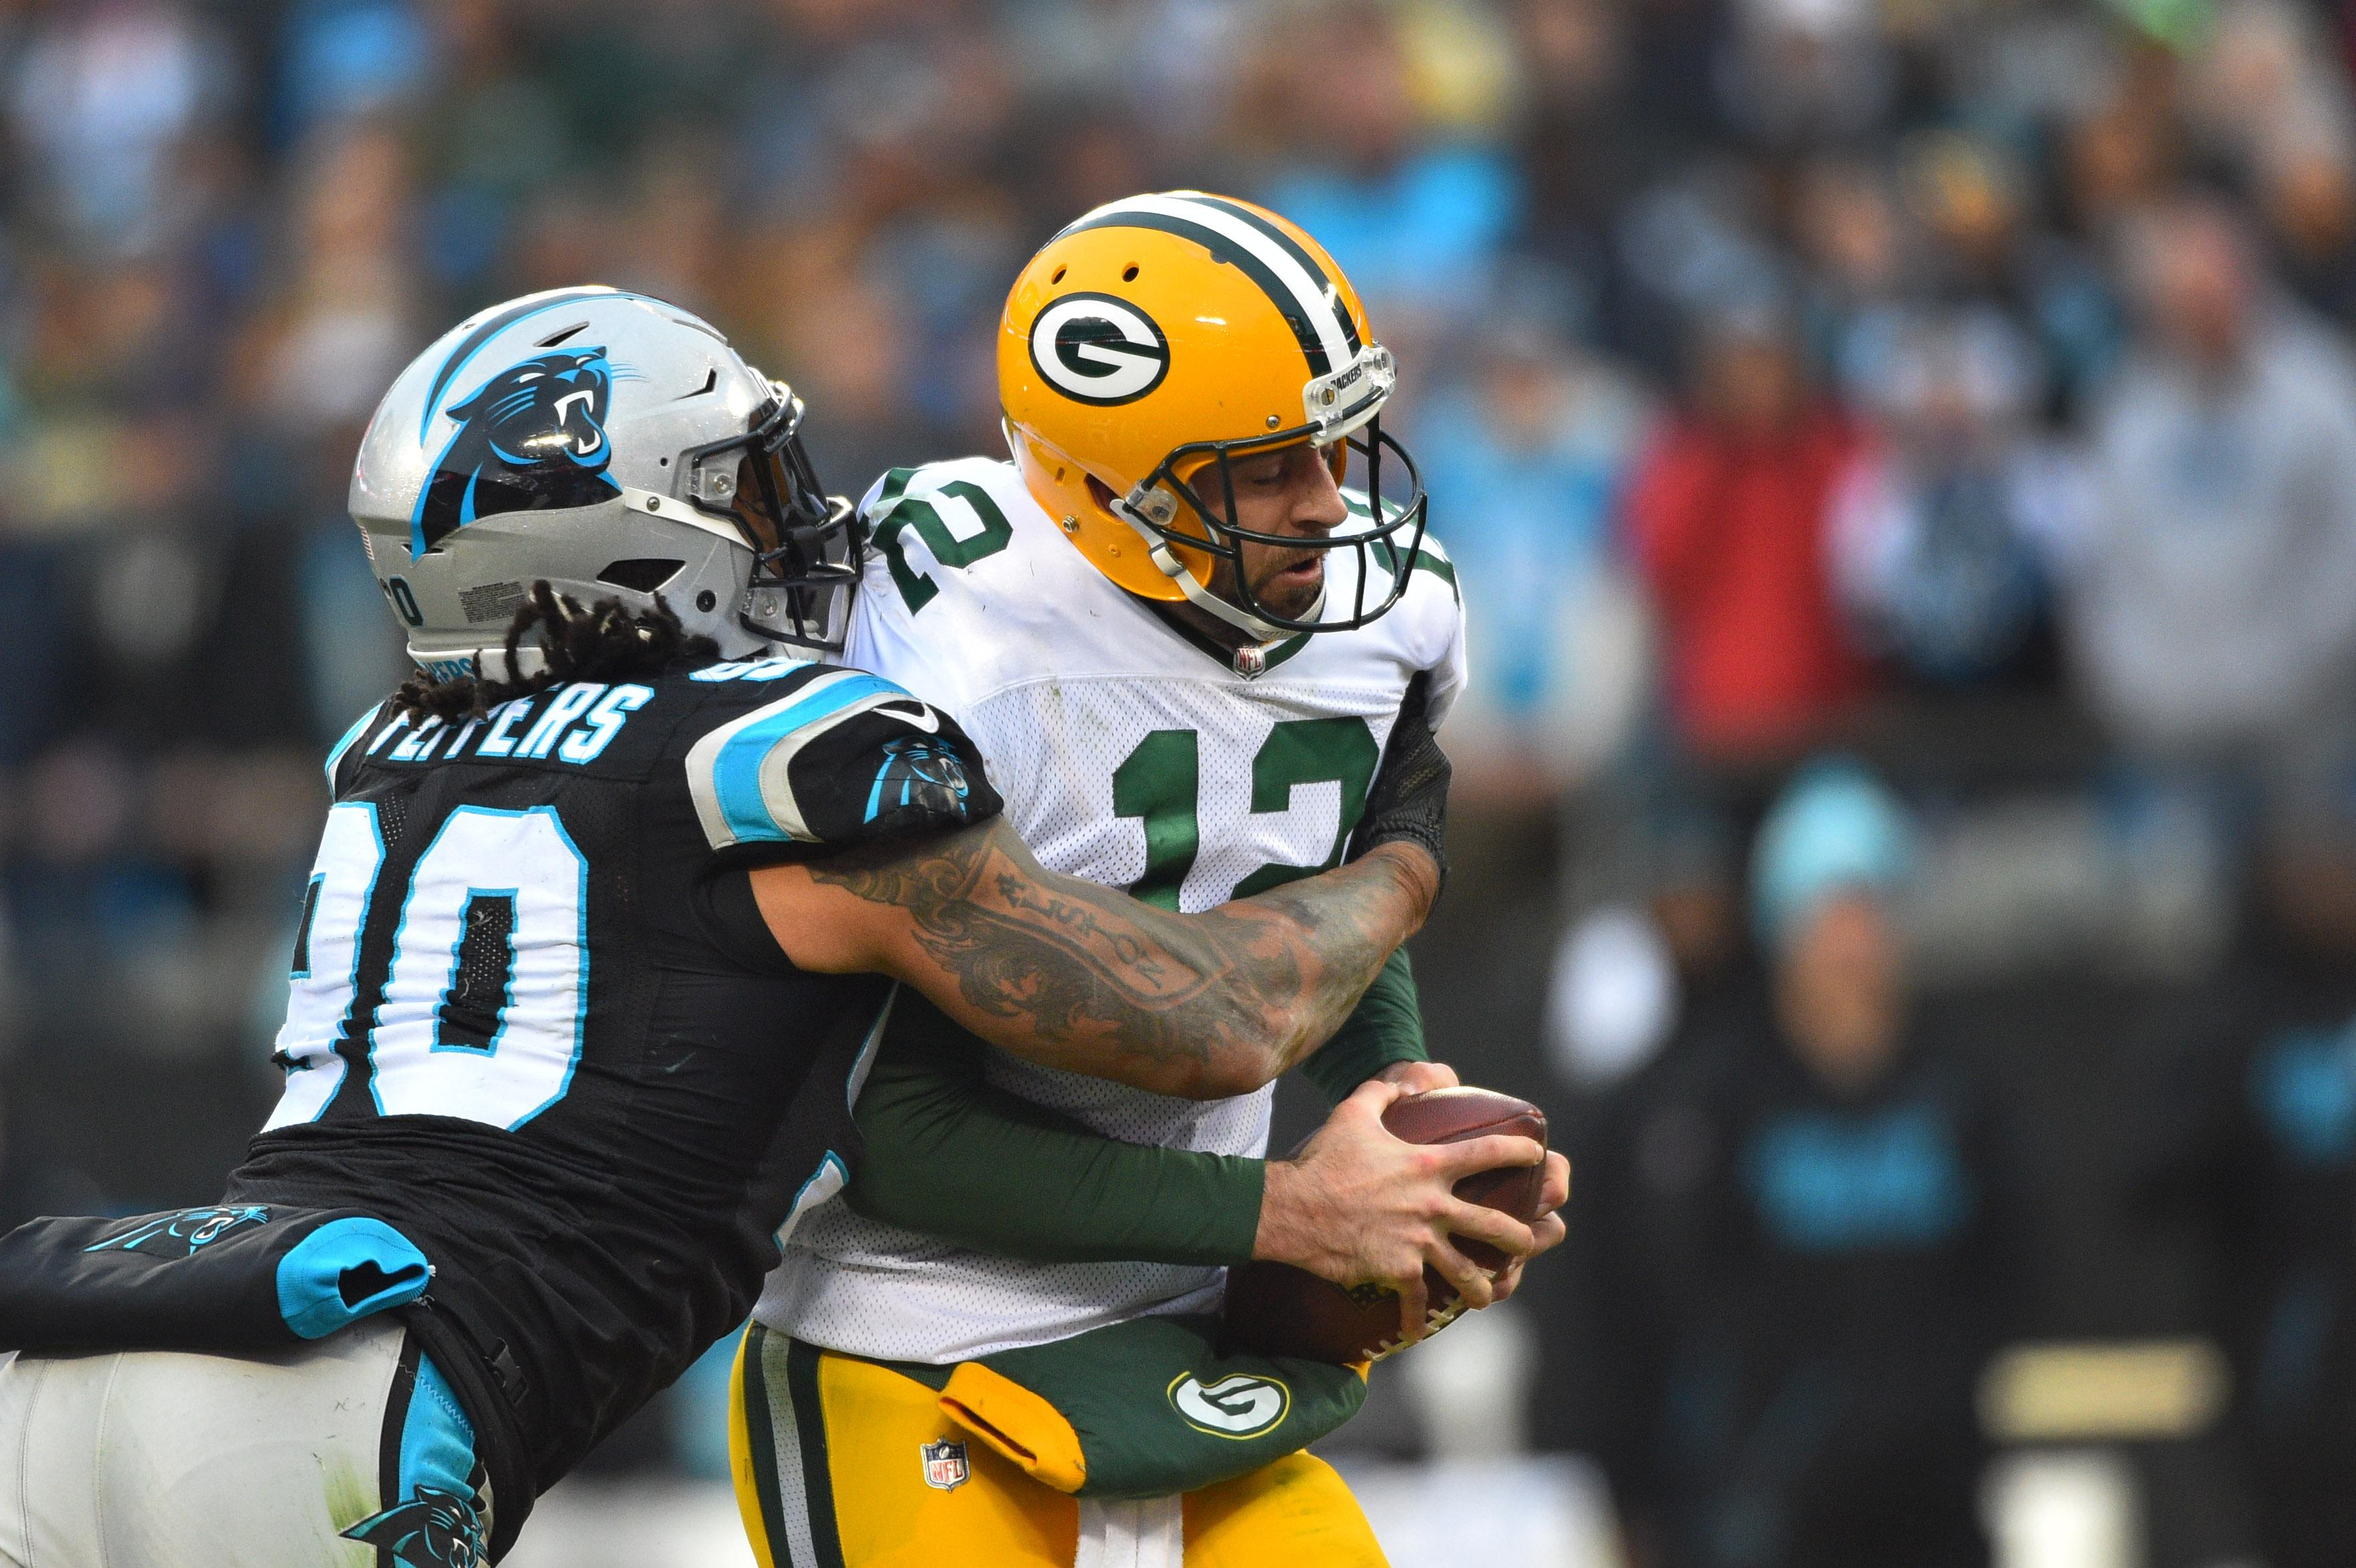 Defensive lineman attack the quarterback in the hopes of forcing a sack